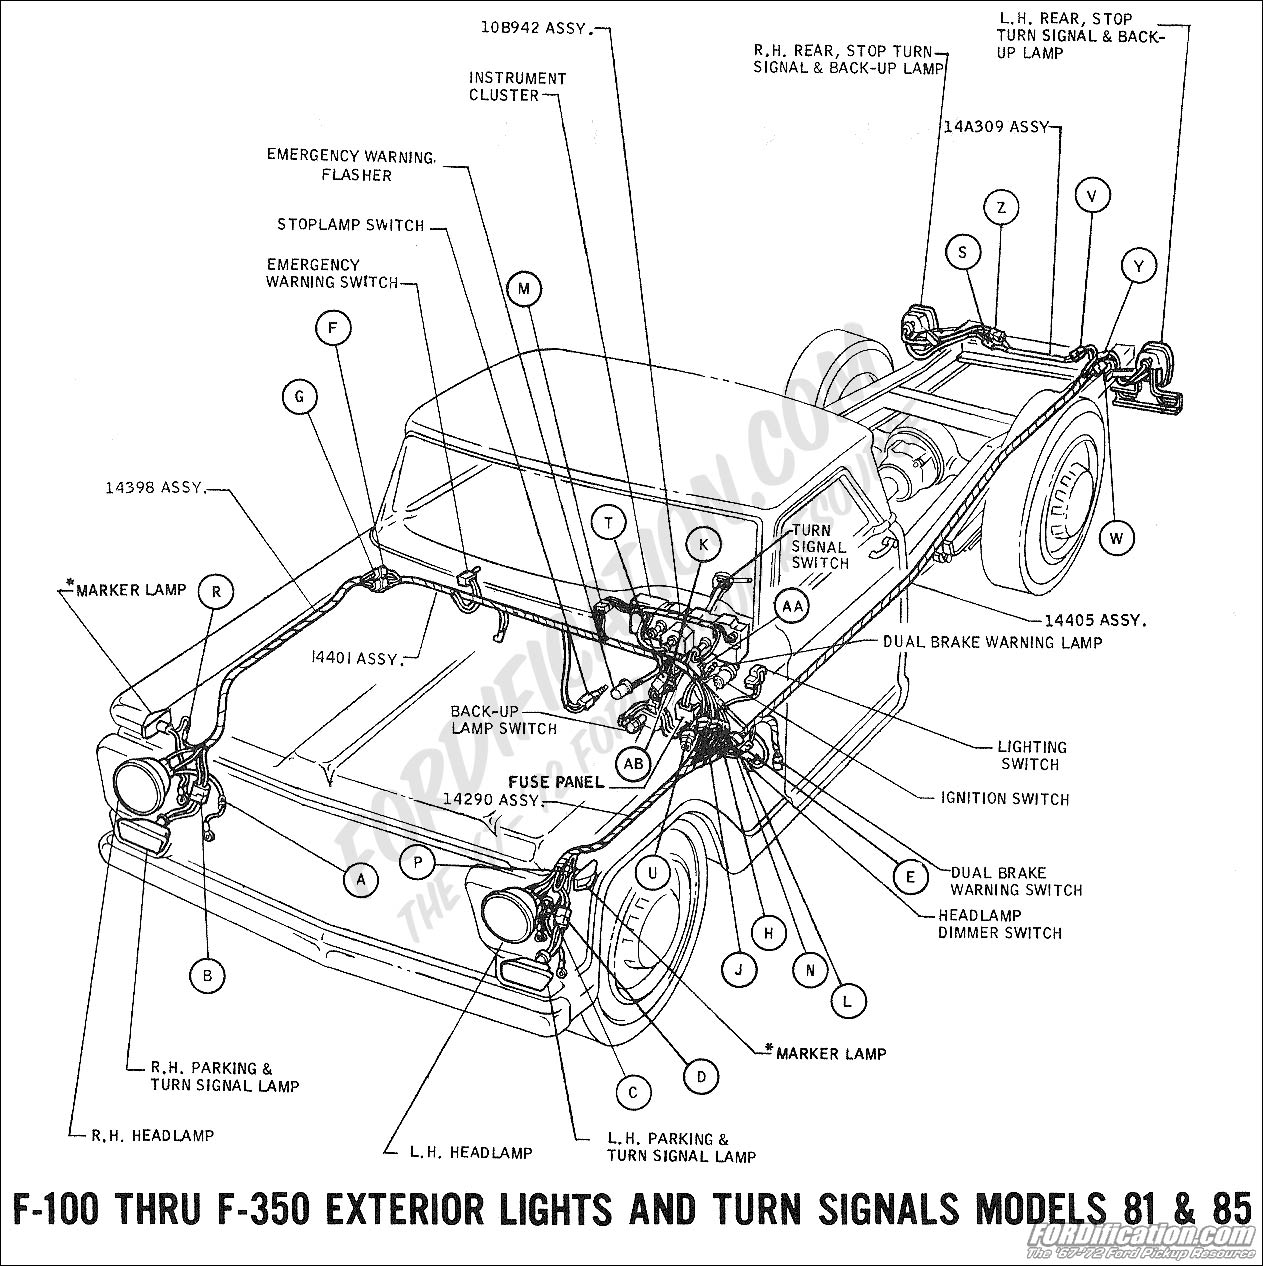 Ford Truck Technical Drawings And Schematics Section H Wiring 1991 F150 4x4 Fuse Box To Coil 1969 F 100 Thru 350 Exterior Lights Turn Signals